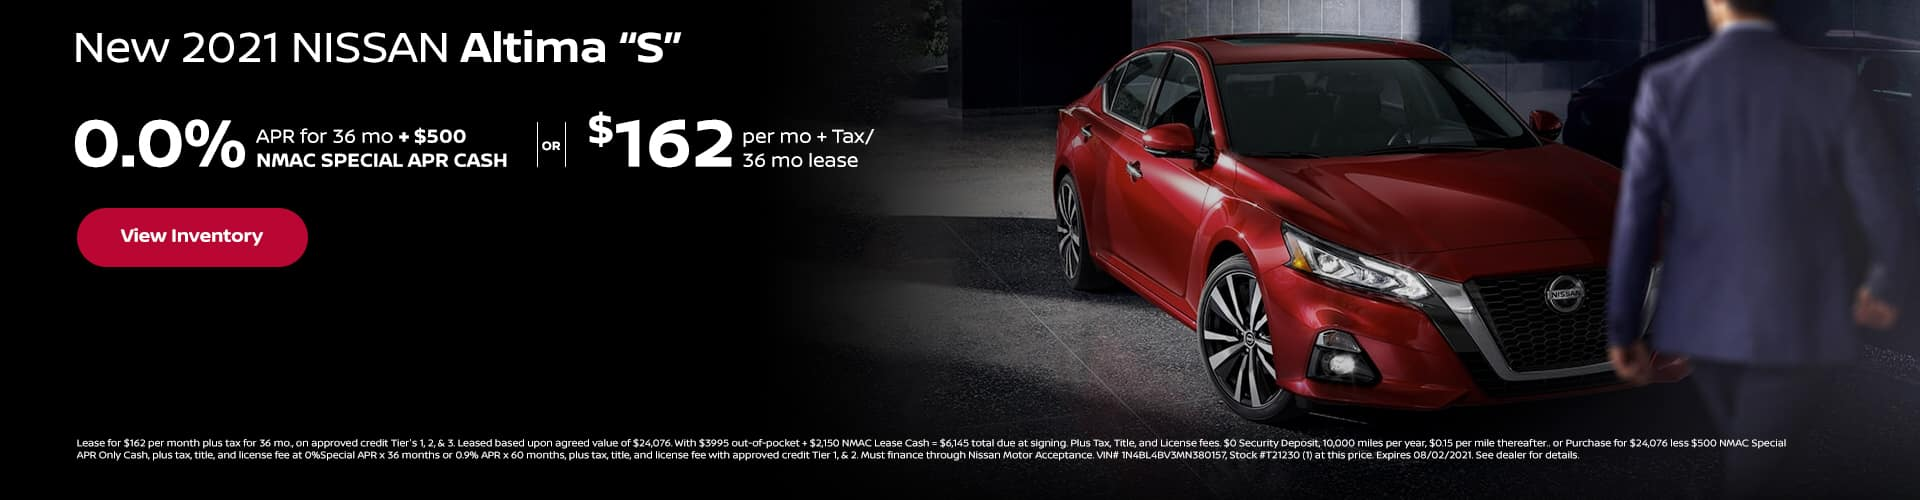 """0.0% APR x 36 mo + 500 NMAC SPECIAL APR CASH or 0.9% APR x 60 mo New 2021 Nissan ALTIMA """"S"""" (1) AVAILABLE $162 per mo. + Tax / 36 mo lease"""